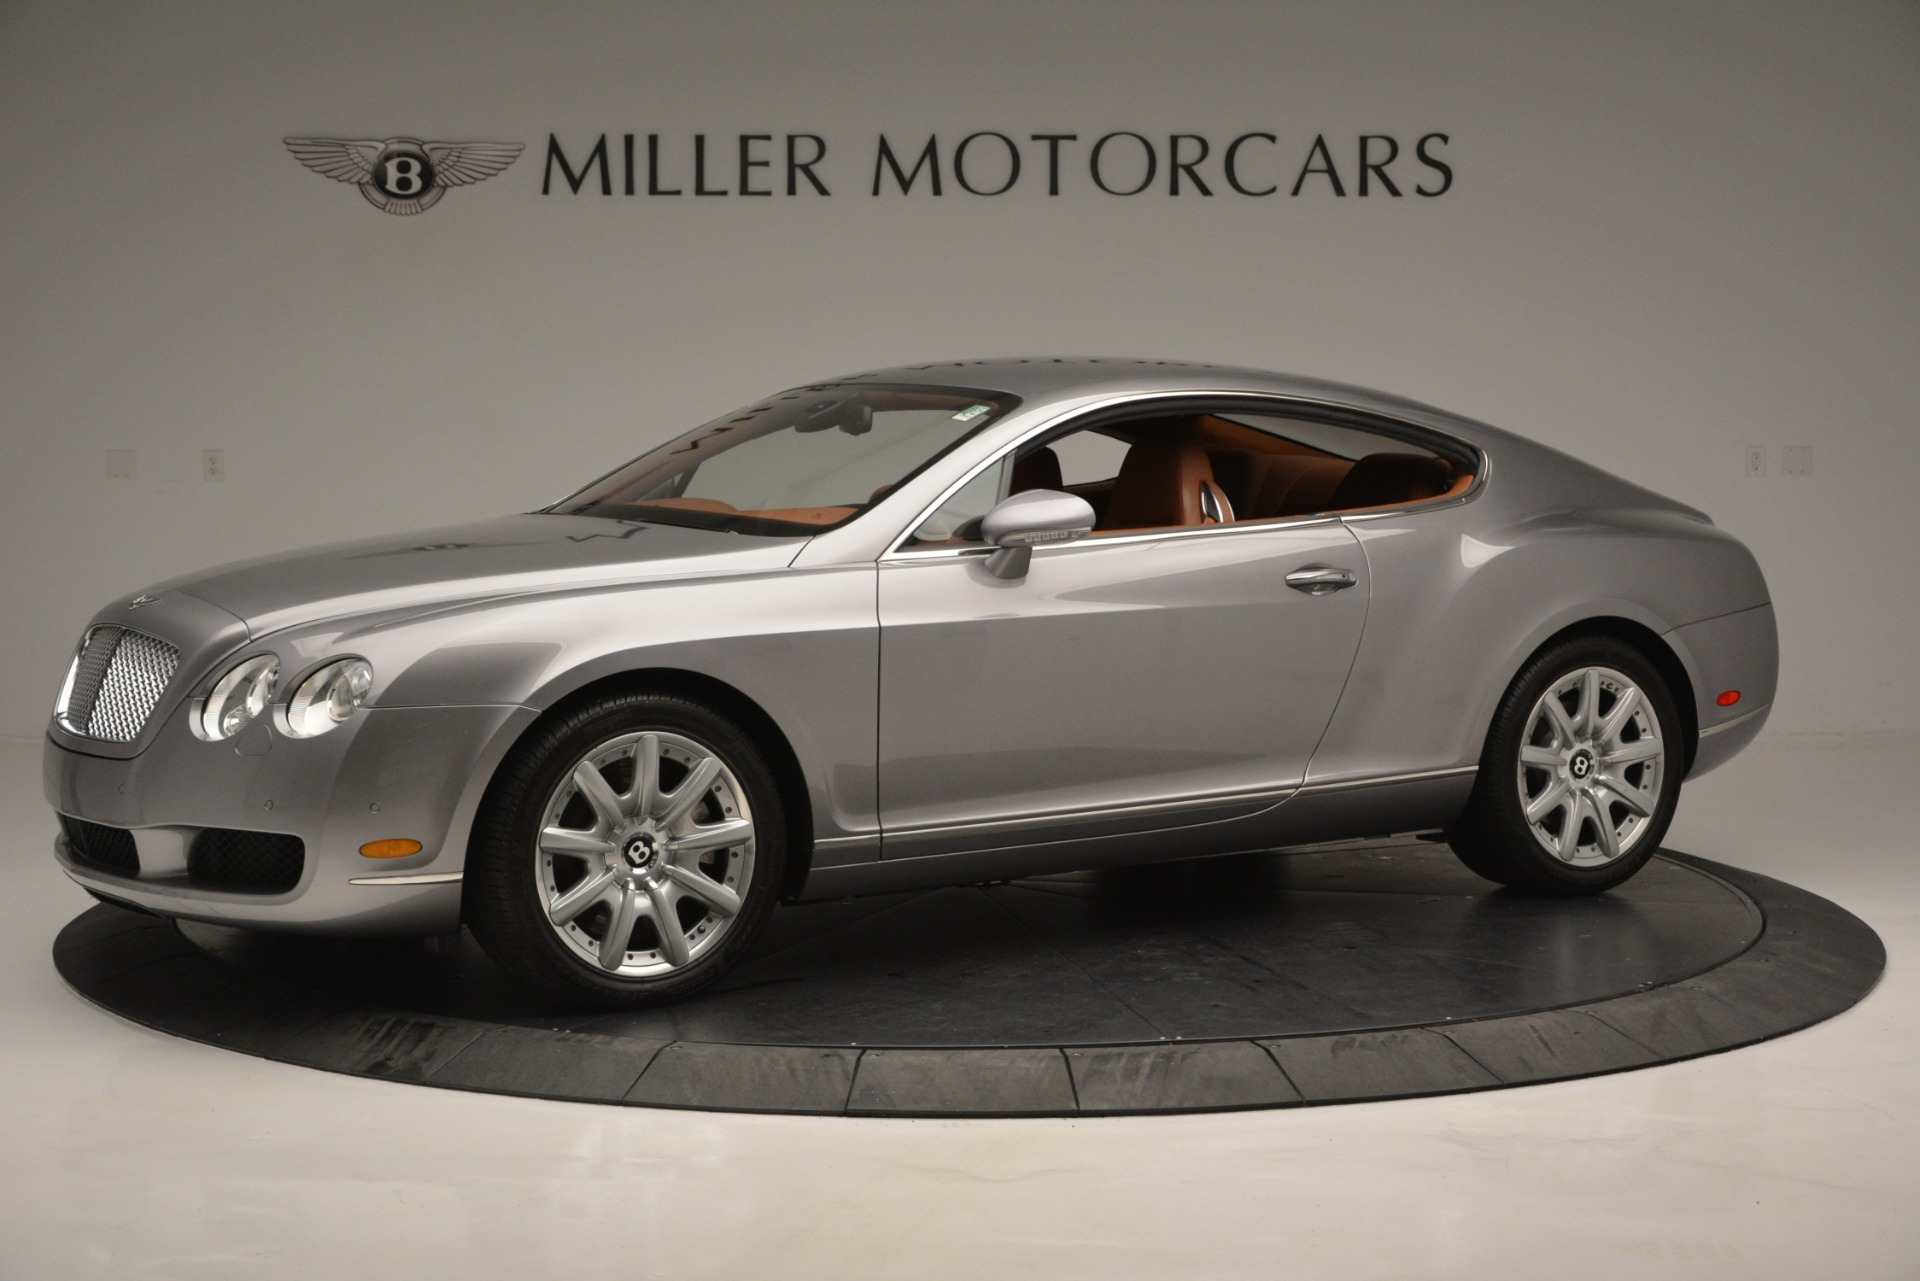 Used 2005 Bentley Continental GT GT Turbo For Sale In Greenwich, CT 2726_p2